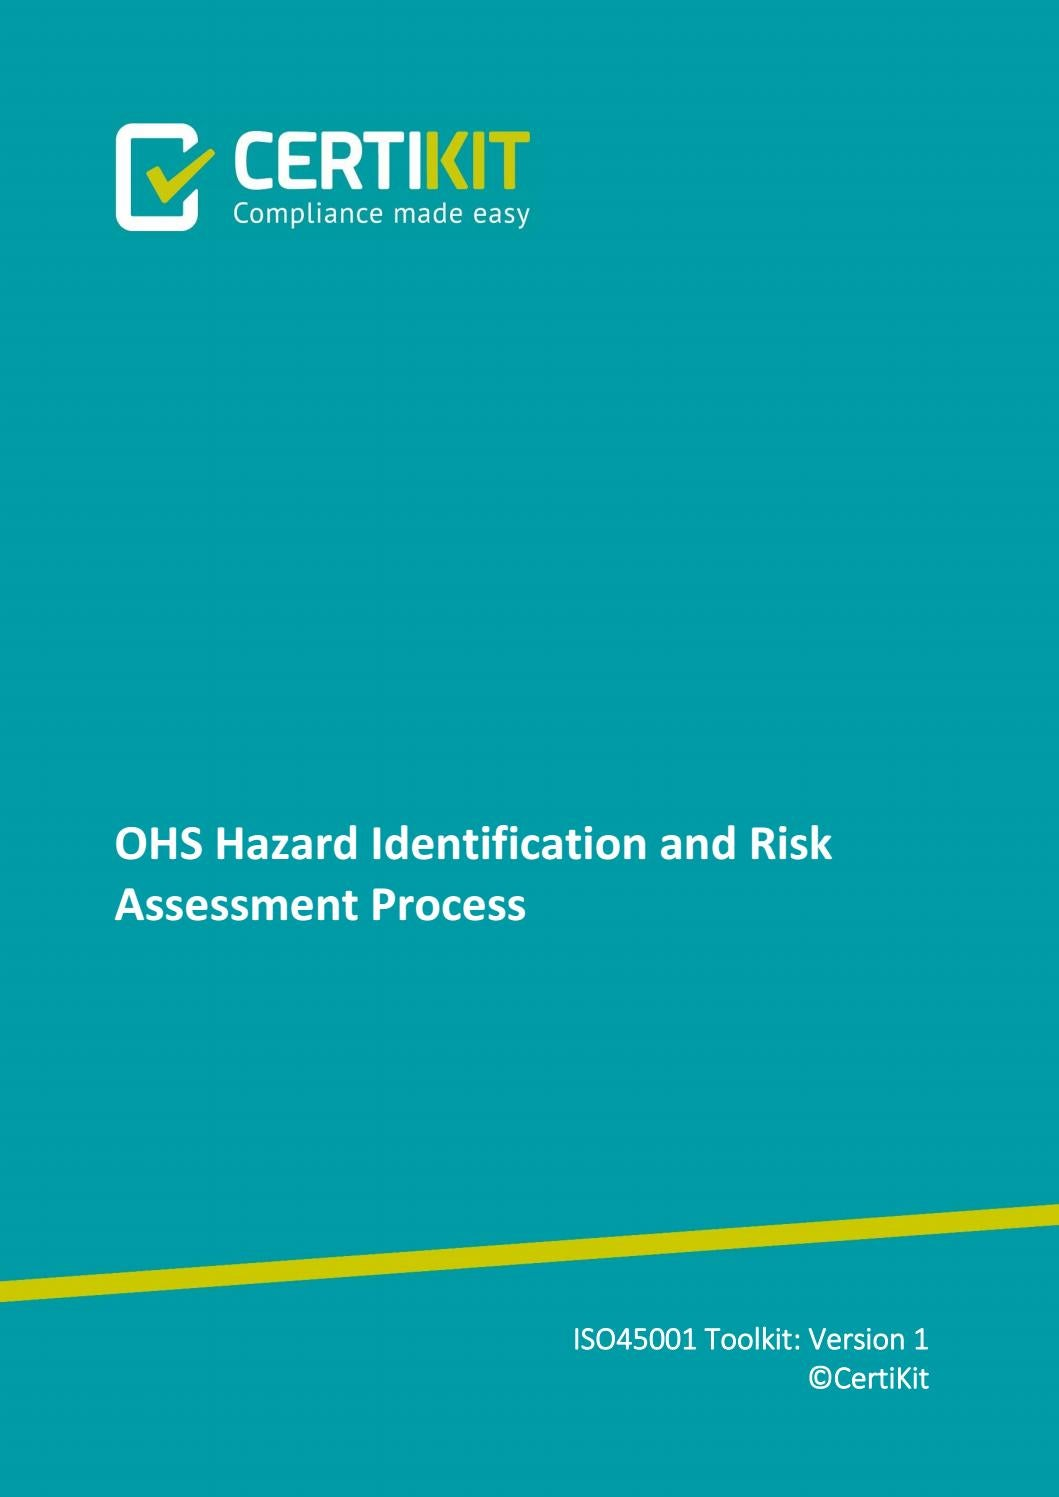 Ohs Doc 06 2 Ohs Hazard Identification And Risk Assessment Process By Public It Limited Issuu The following flowchart shows the risk assessment process established by iso 12100. issuu